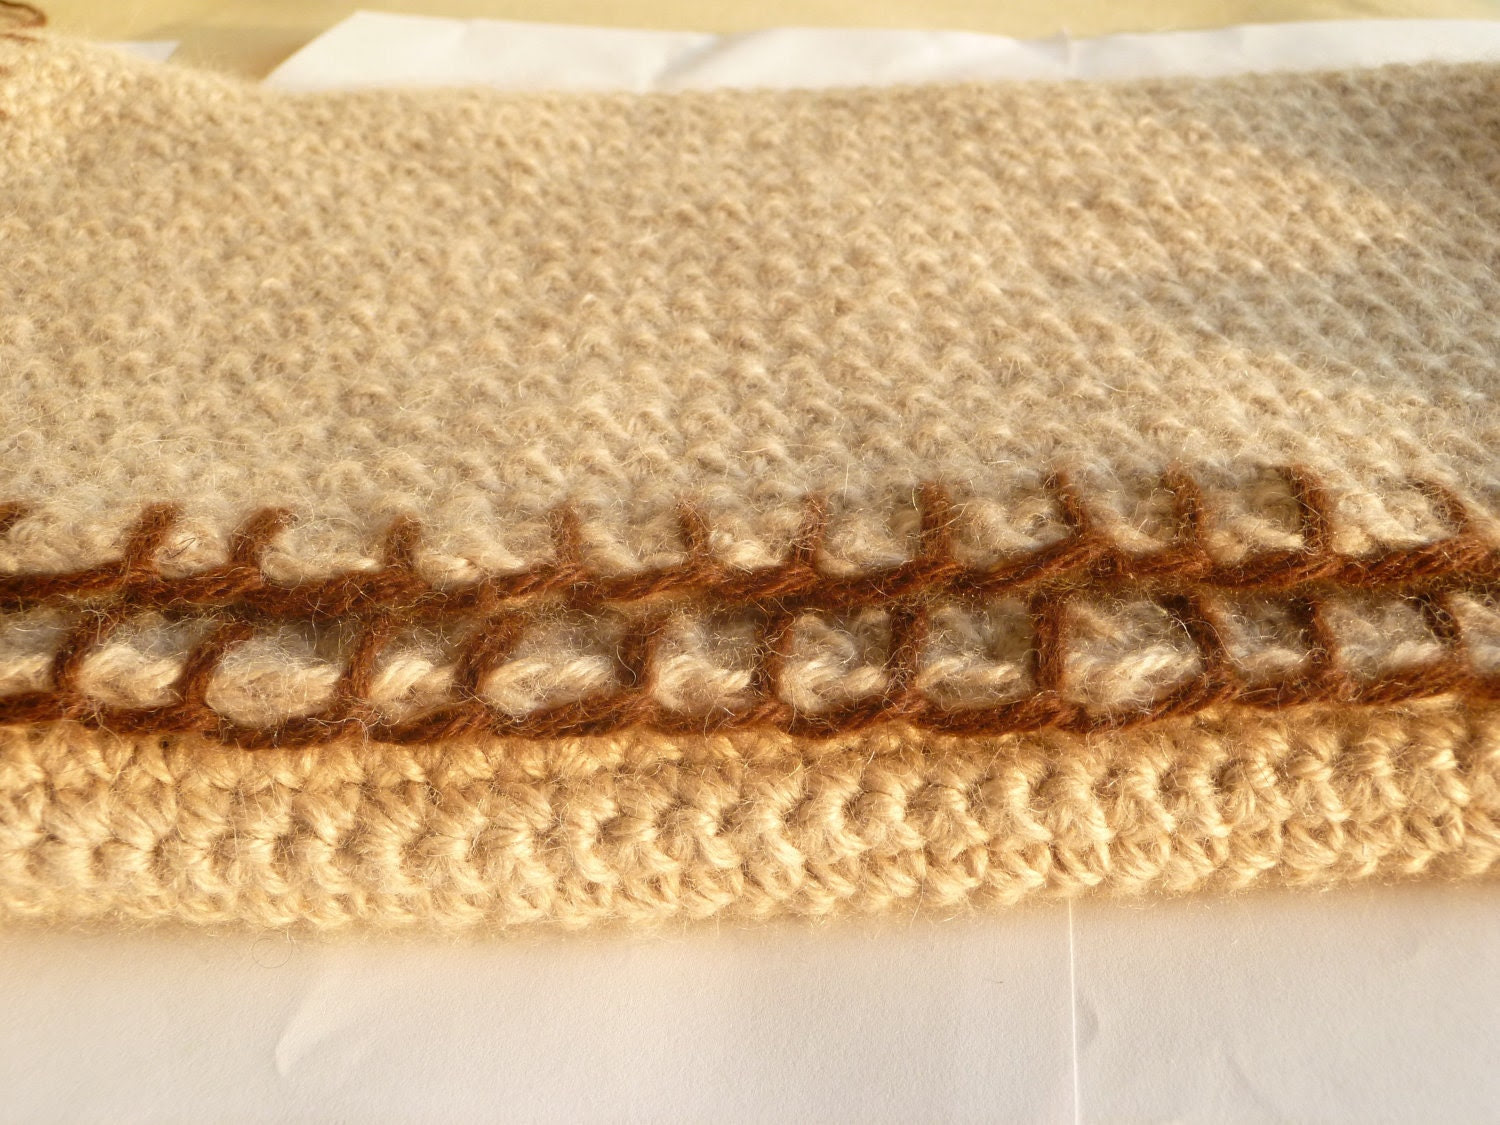 Large Blanket, Crochet, Contrast Border, 50in x 60in, Pure Alpaca, luxury blanket, Made-to-Order, Charitable Donation